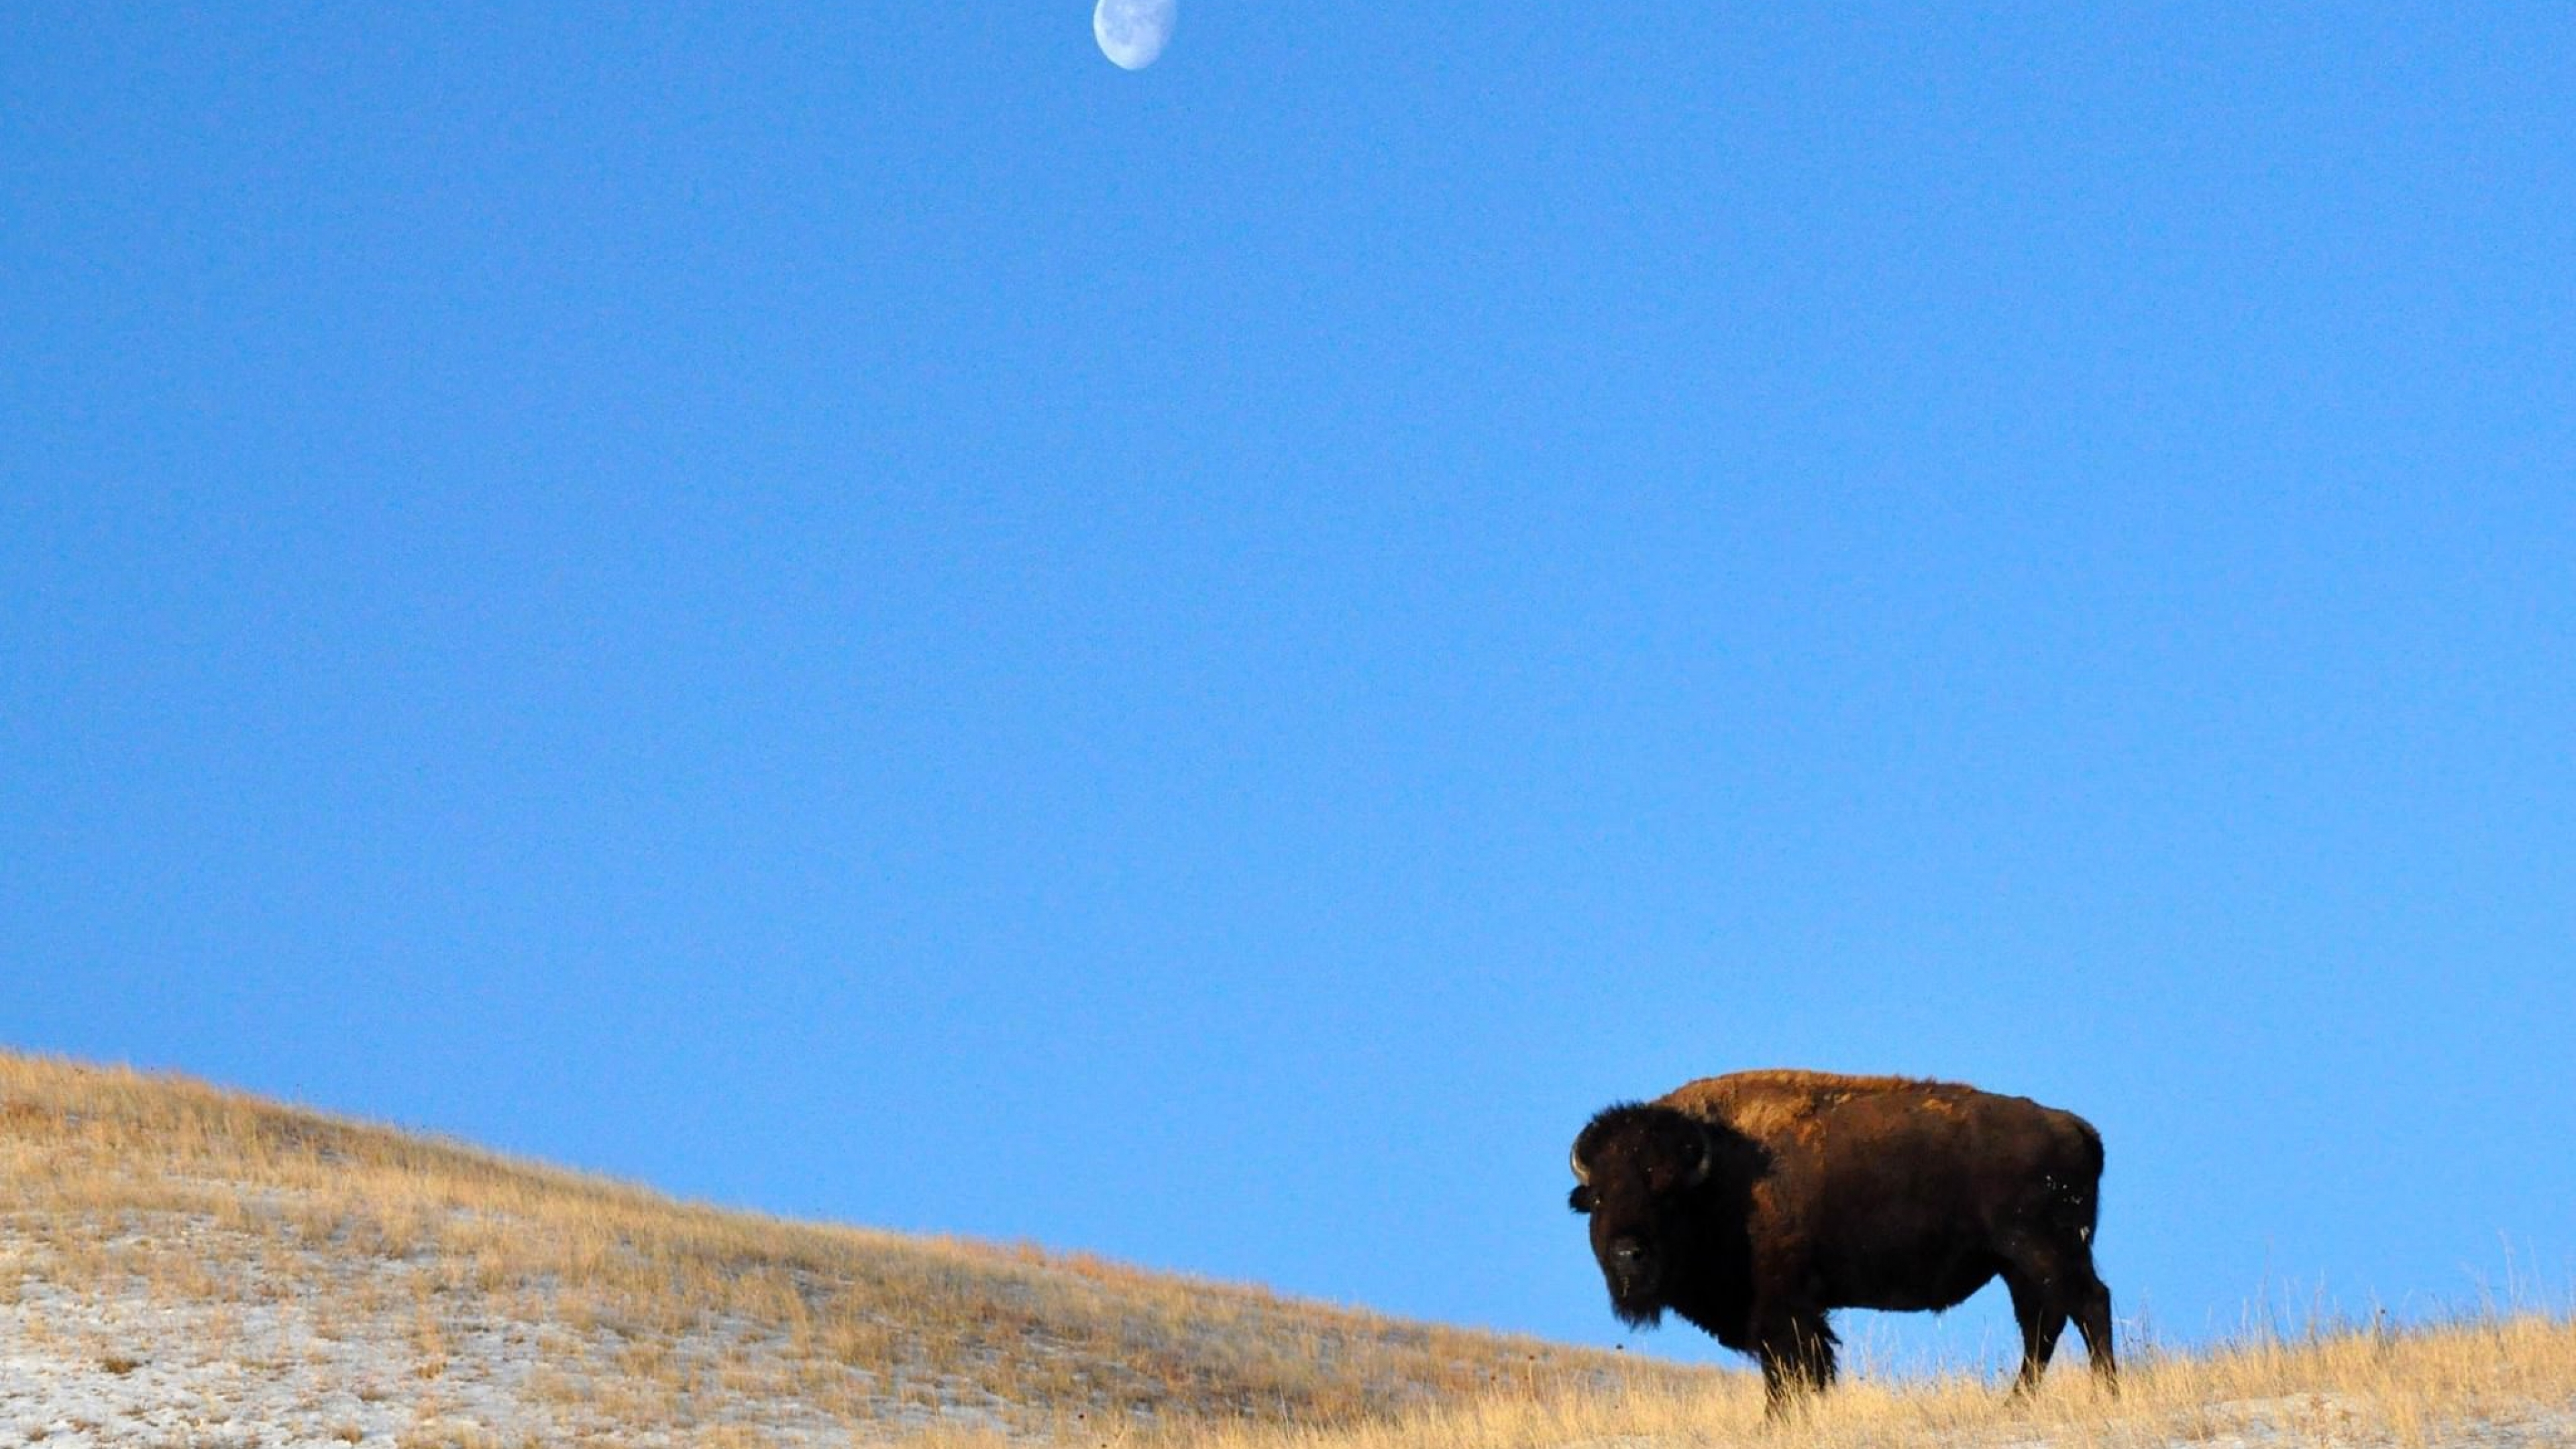 A waining Gibbous moon setting behind a bison standing on a yellow grassland at Wind Cave National Monument